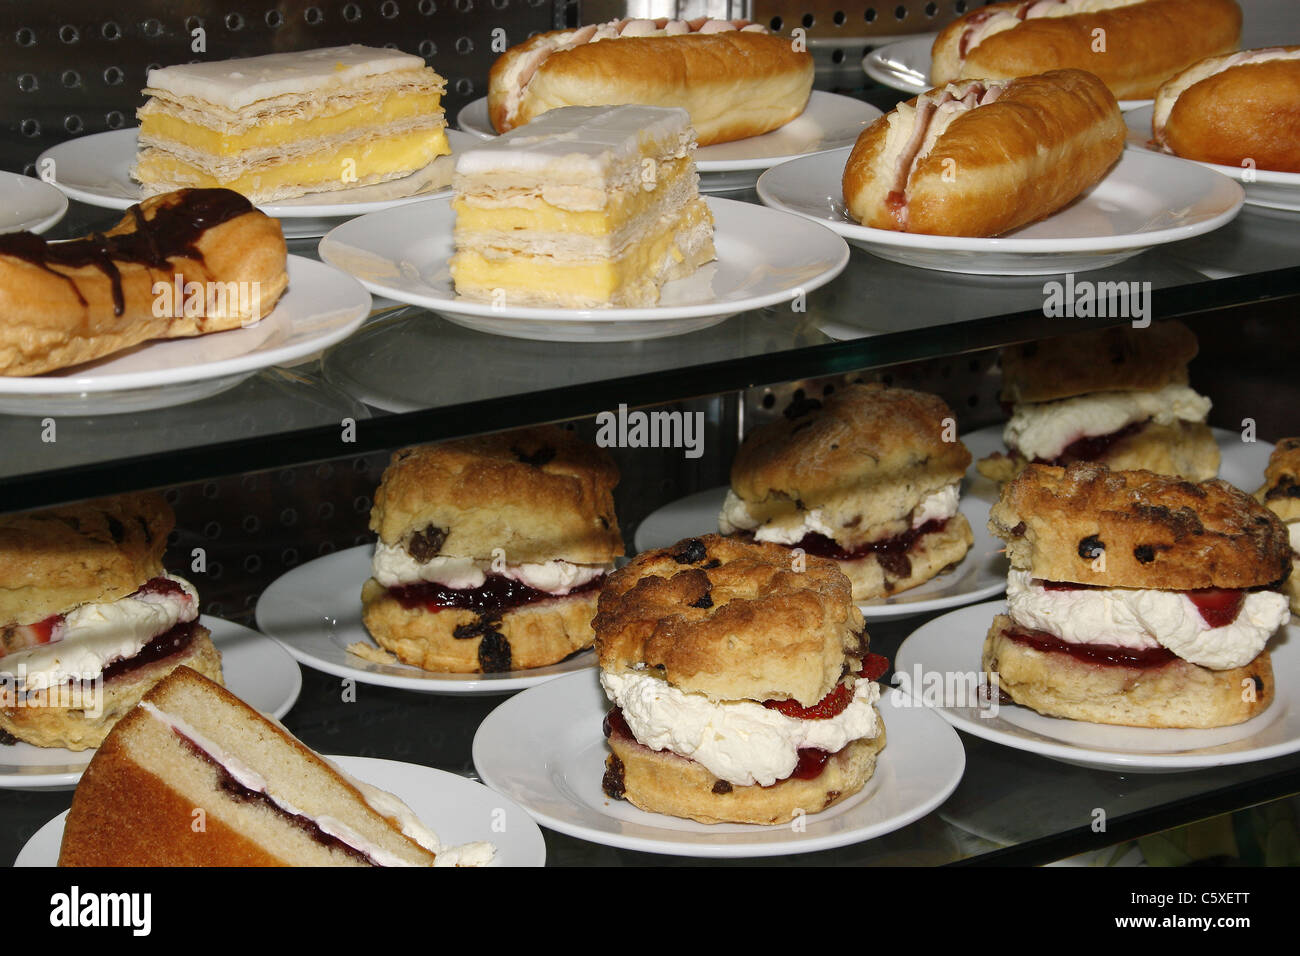 Selezione di dolci al cafe'. Tropical Butterfly House Wildlife & Falconry Centre, NORTH ANSTON, South Yorkshire, Immagini Stock